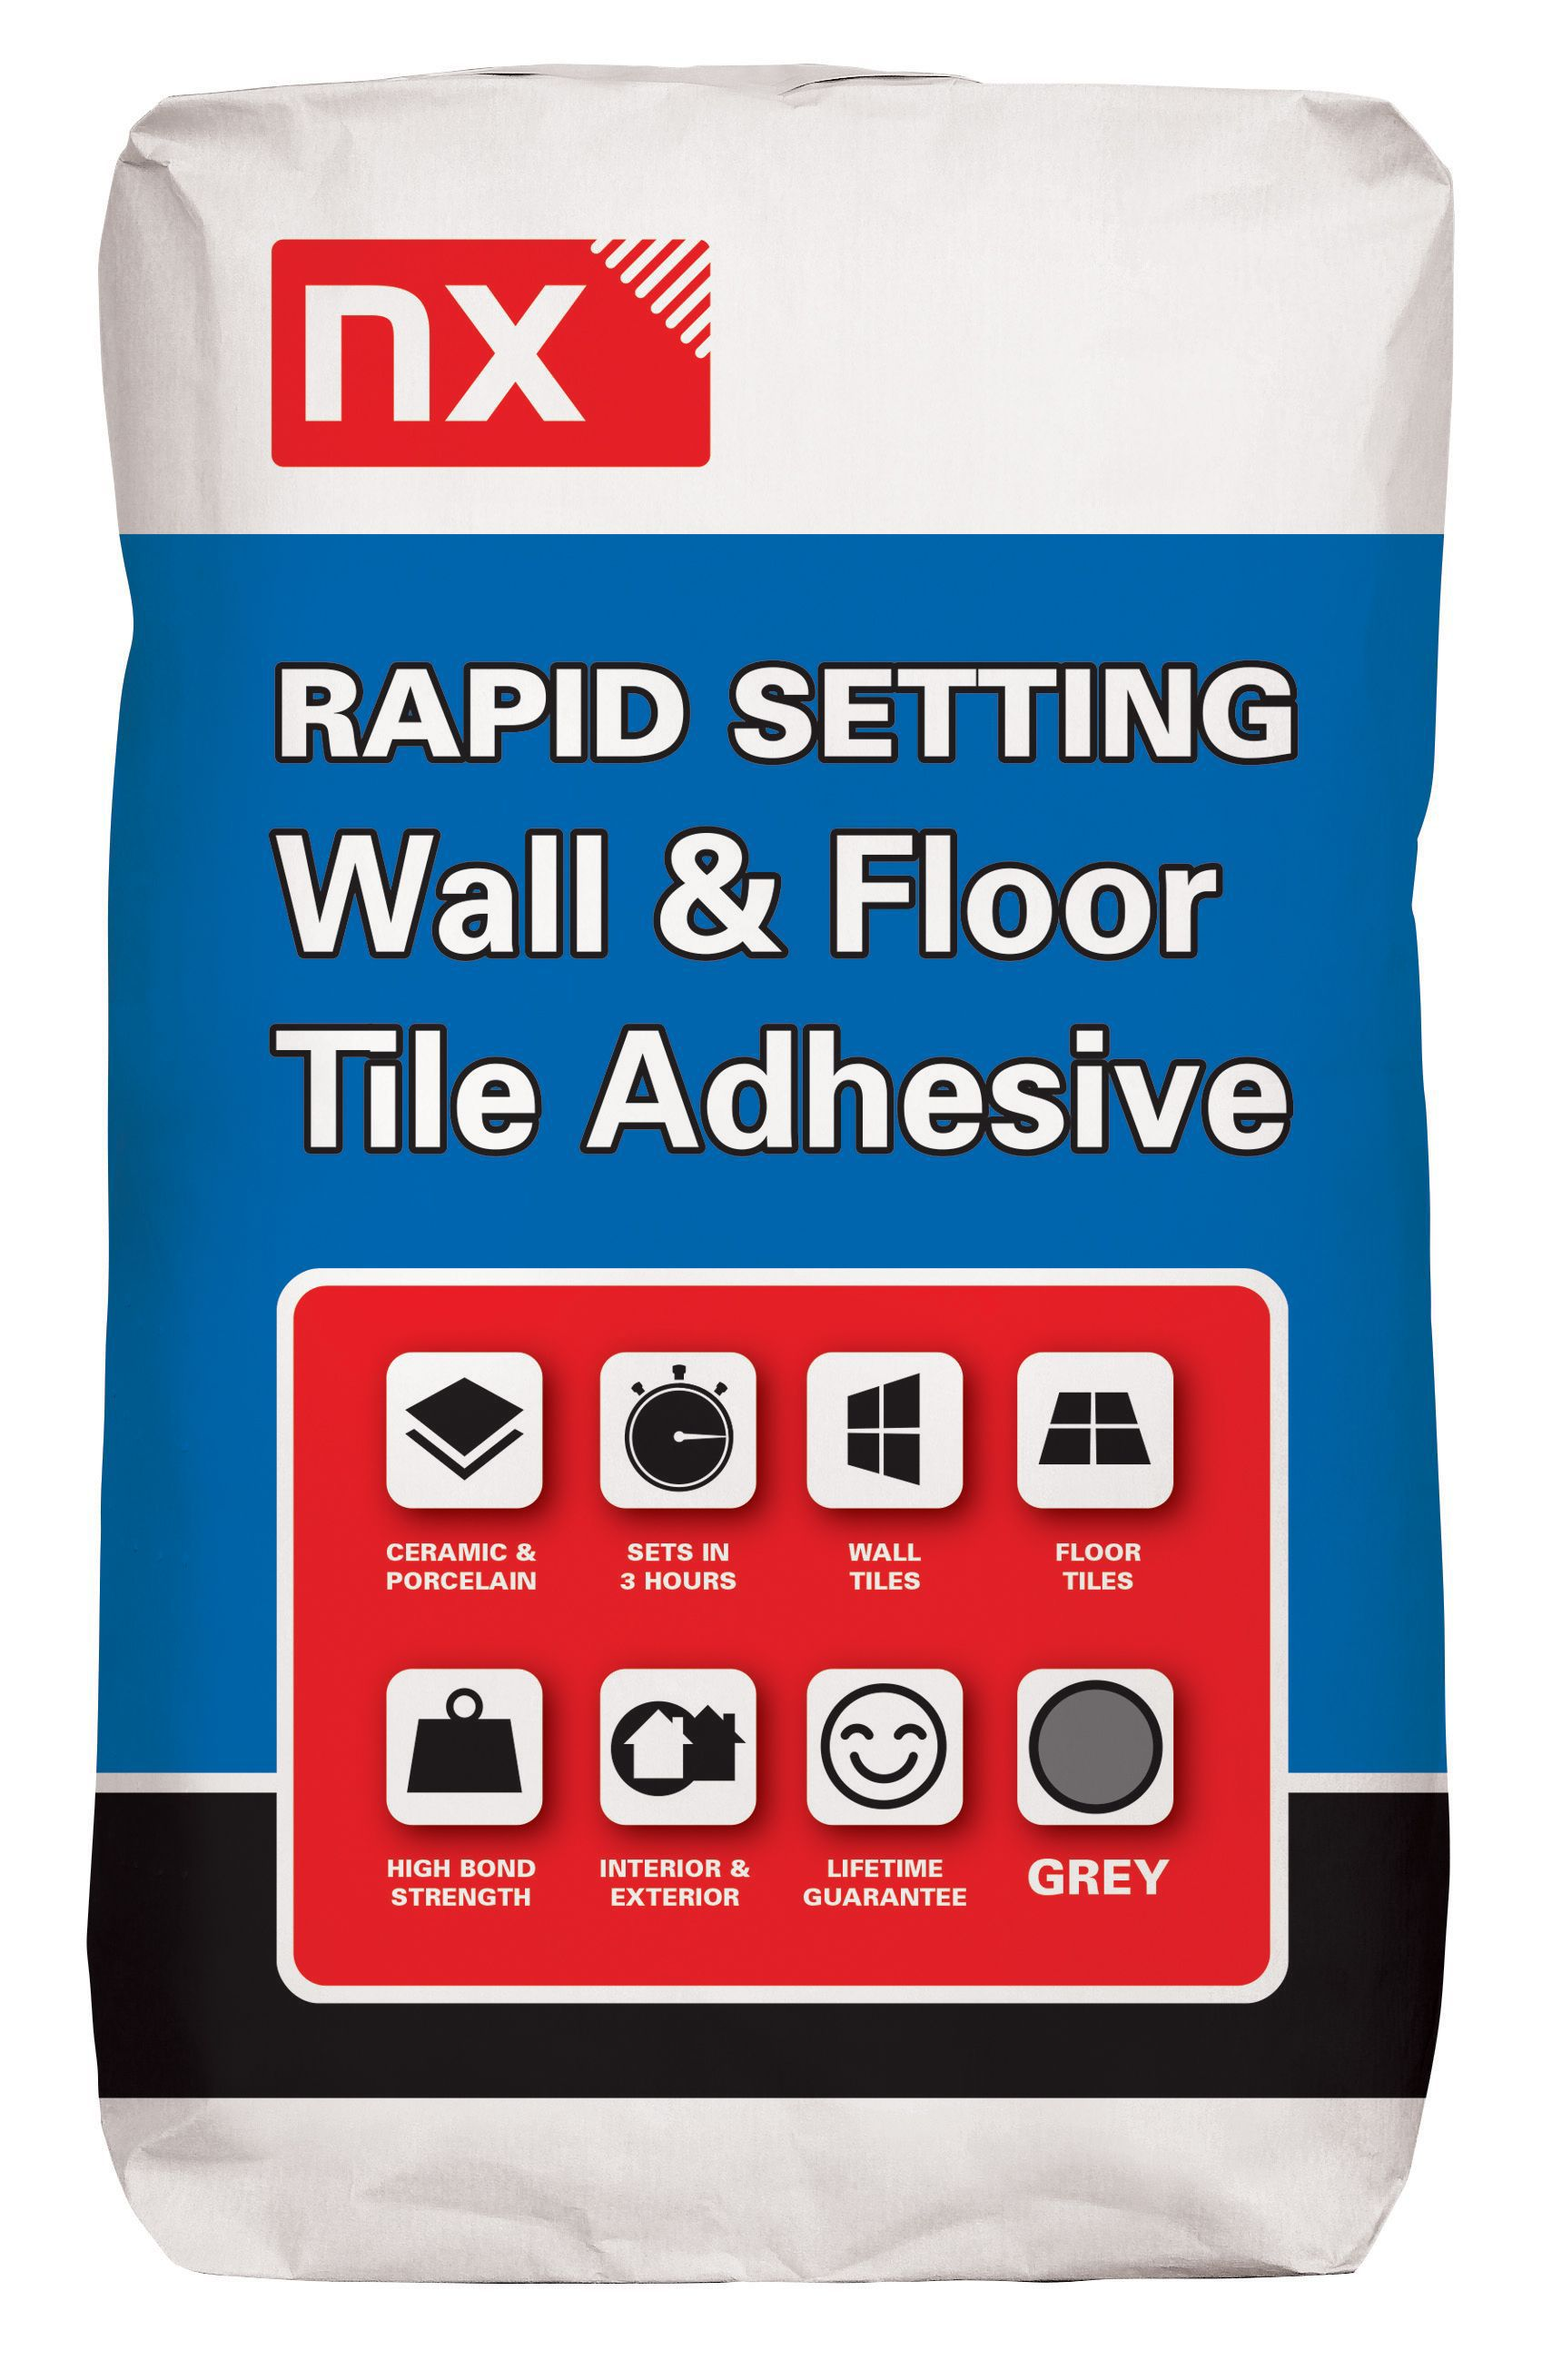 Nx rapid set no floor wall adhesive grey departments diy at bq nx rapid set no floor wall adhesive grey departments diy at bq dailygadgetfo Image collections